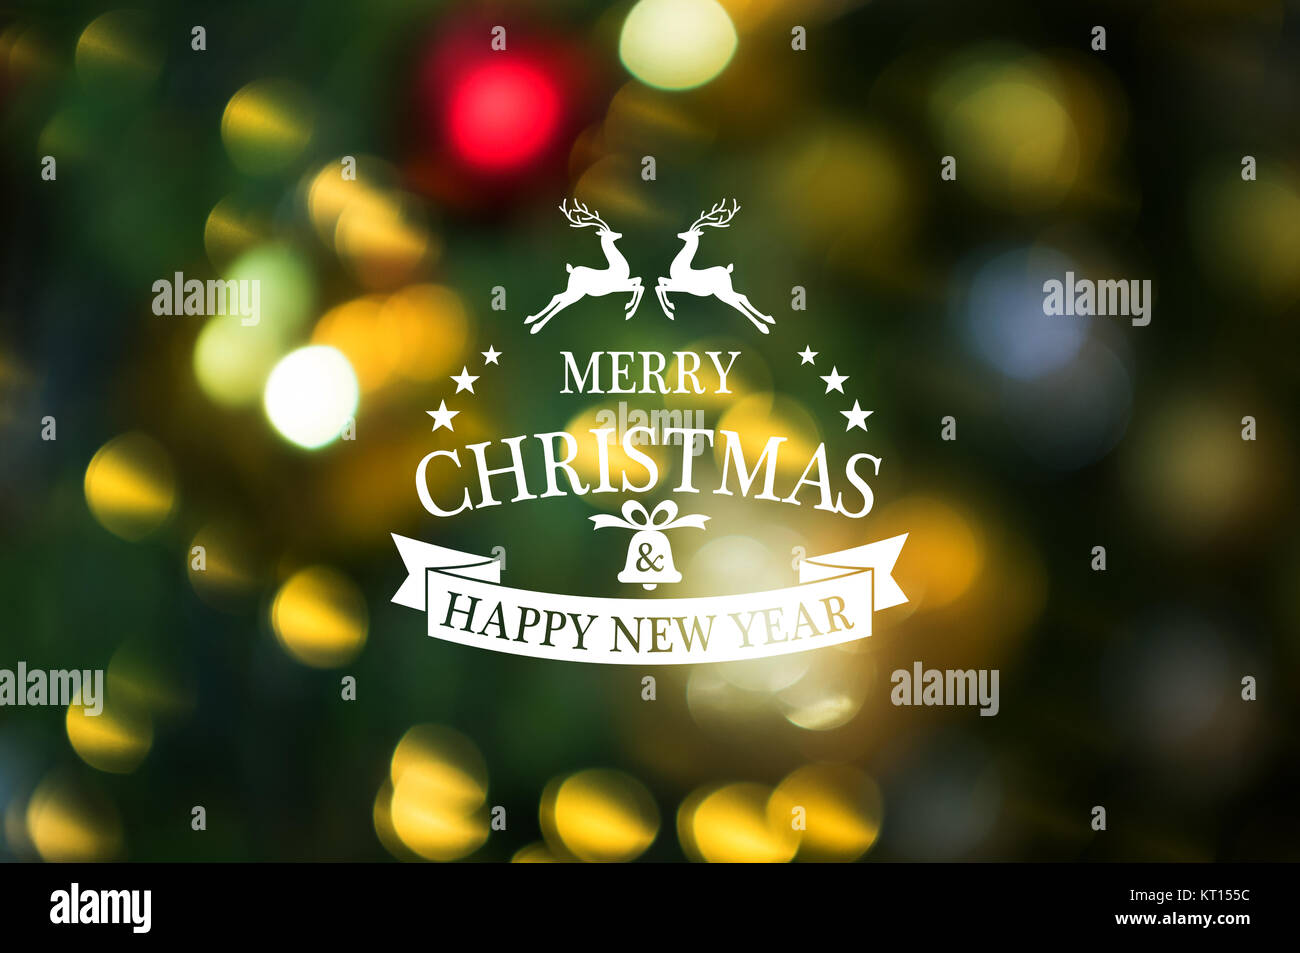 christmas and new year theme background merry christmas and happy new year text with abstract blur christmas background